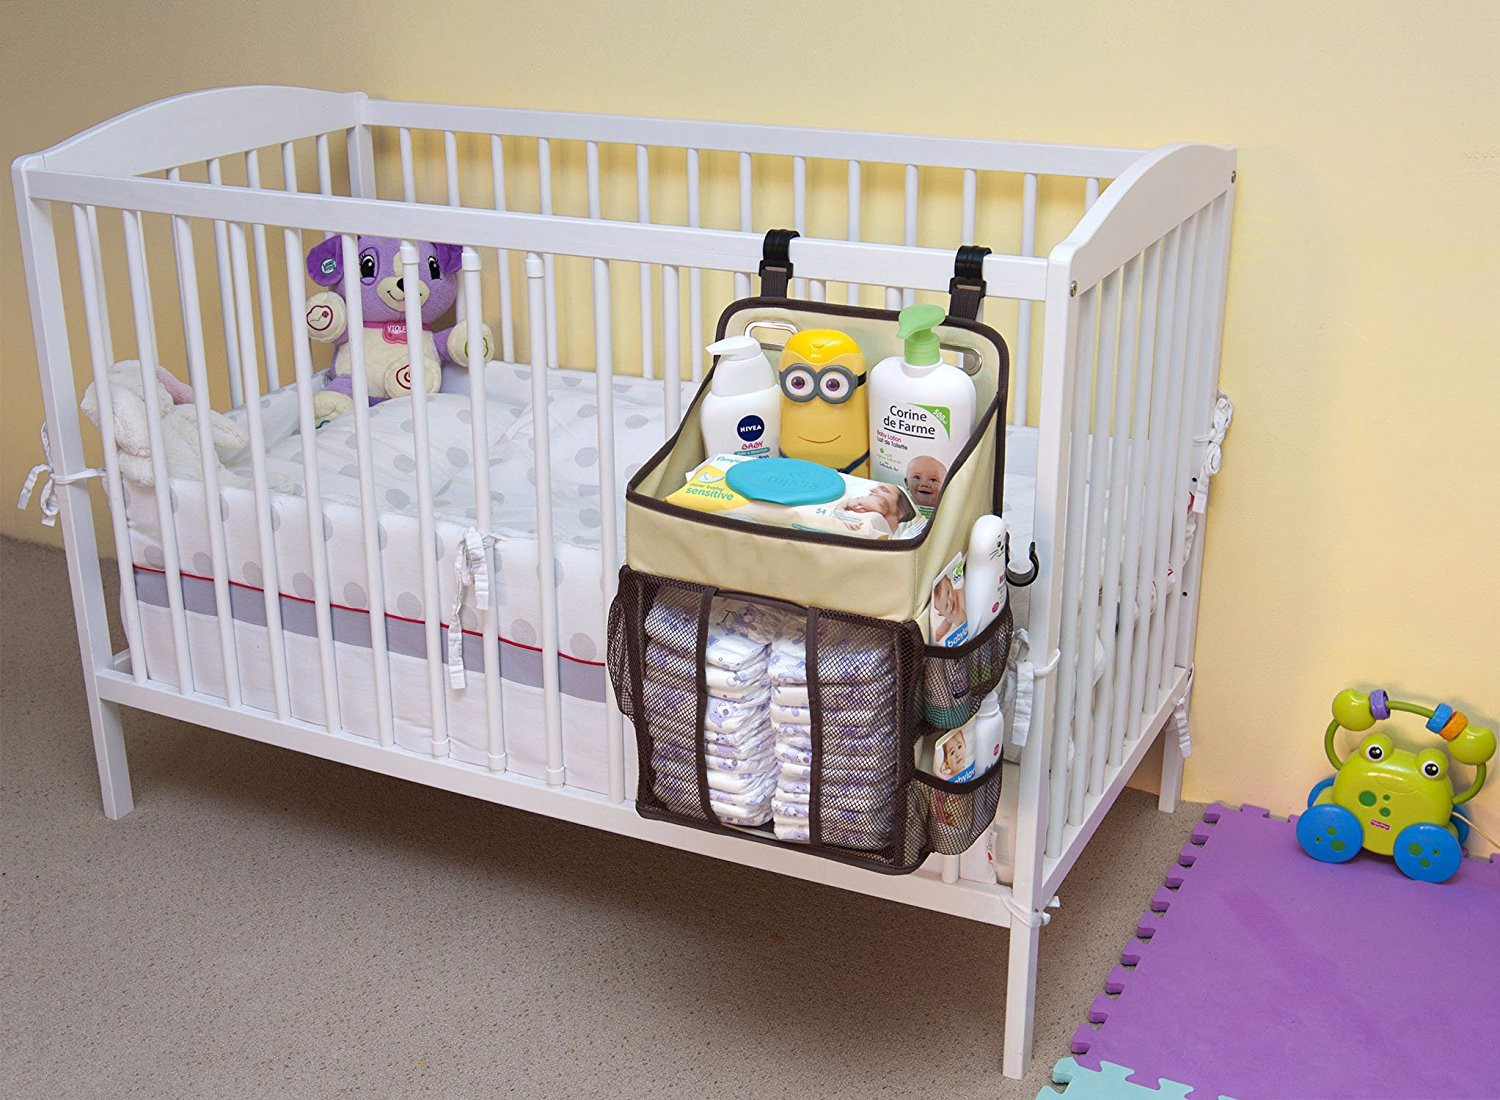 Baby Diaper Caddy Manufacturers, Baby Diaper Caddy Factory, Supply Baby Diaper Caddy